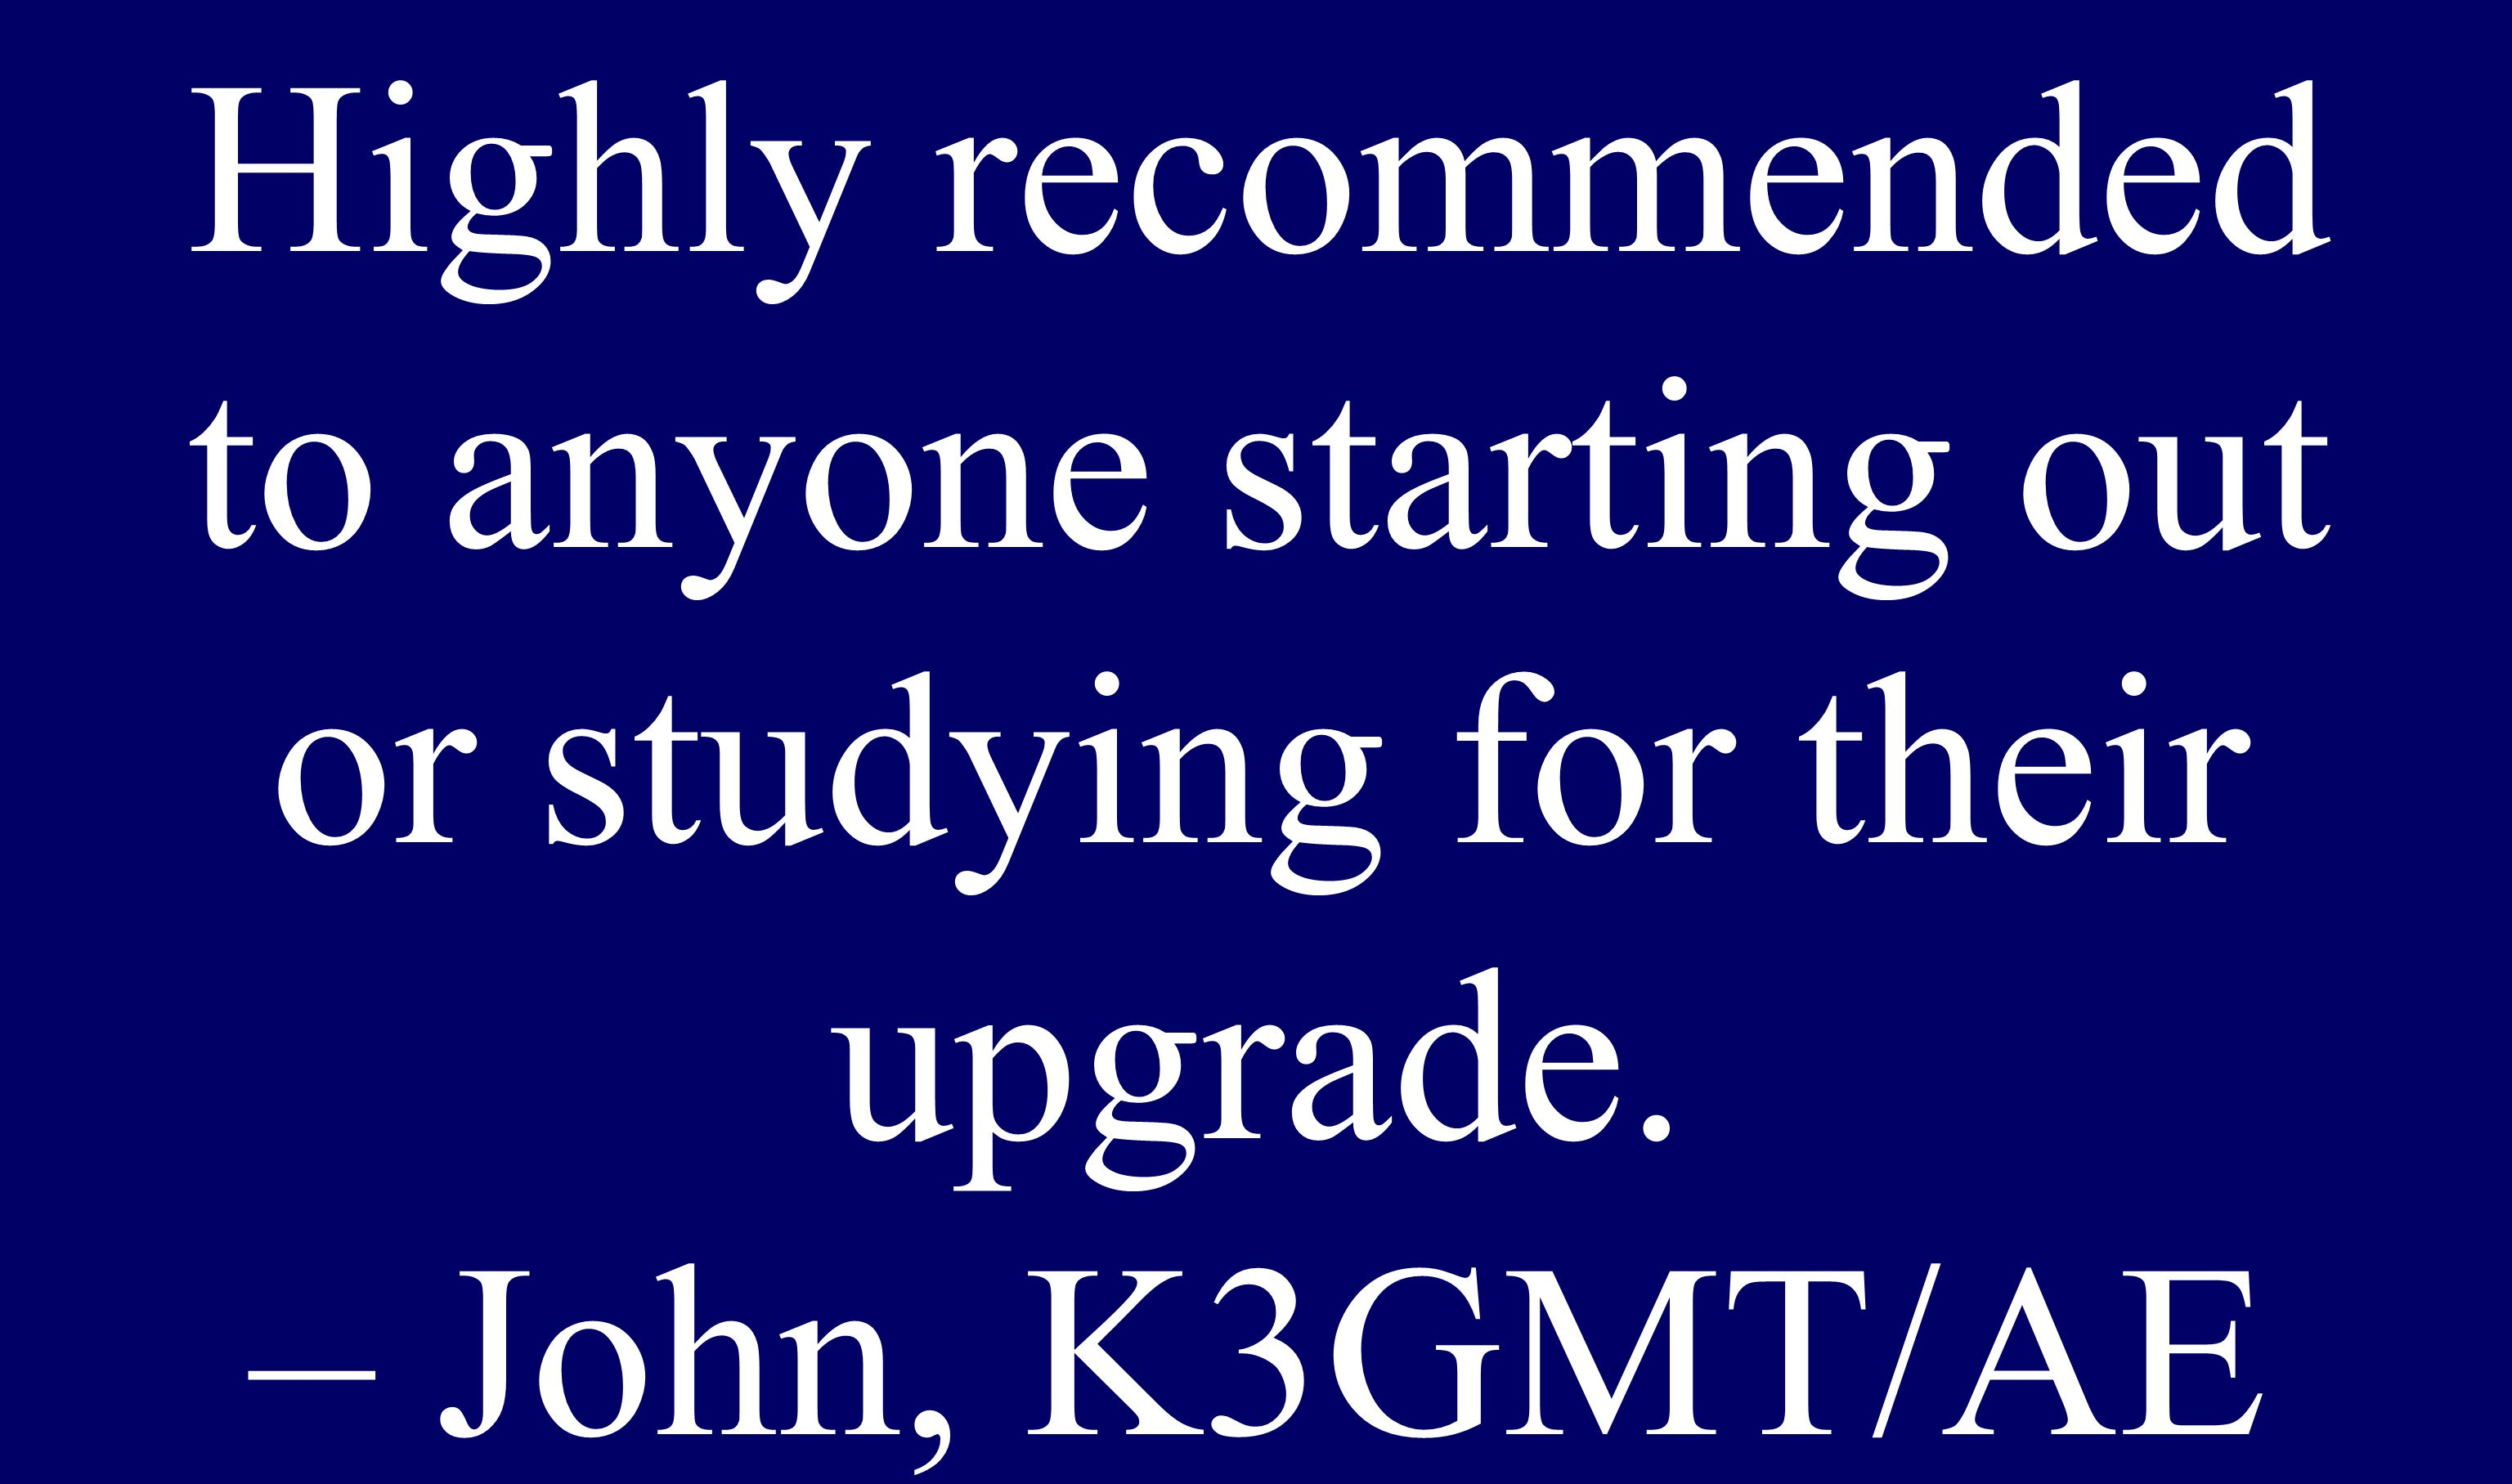 Highly recommended to anyone starting out or studying for their upgrade. – John, K3GMT/AE